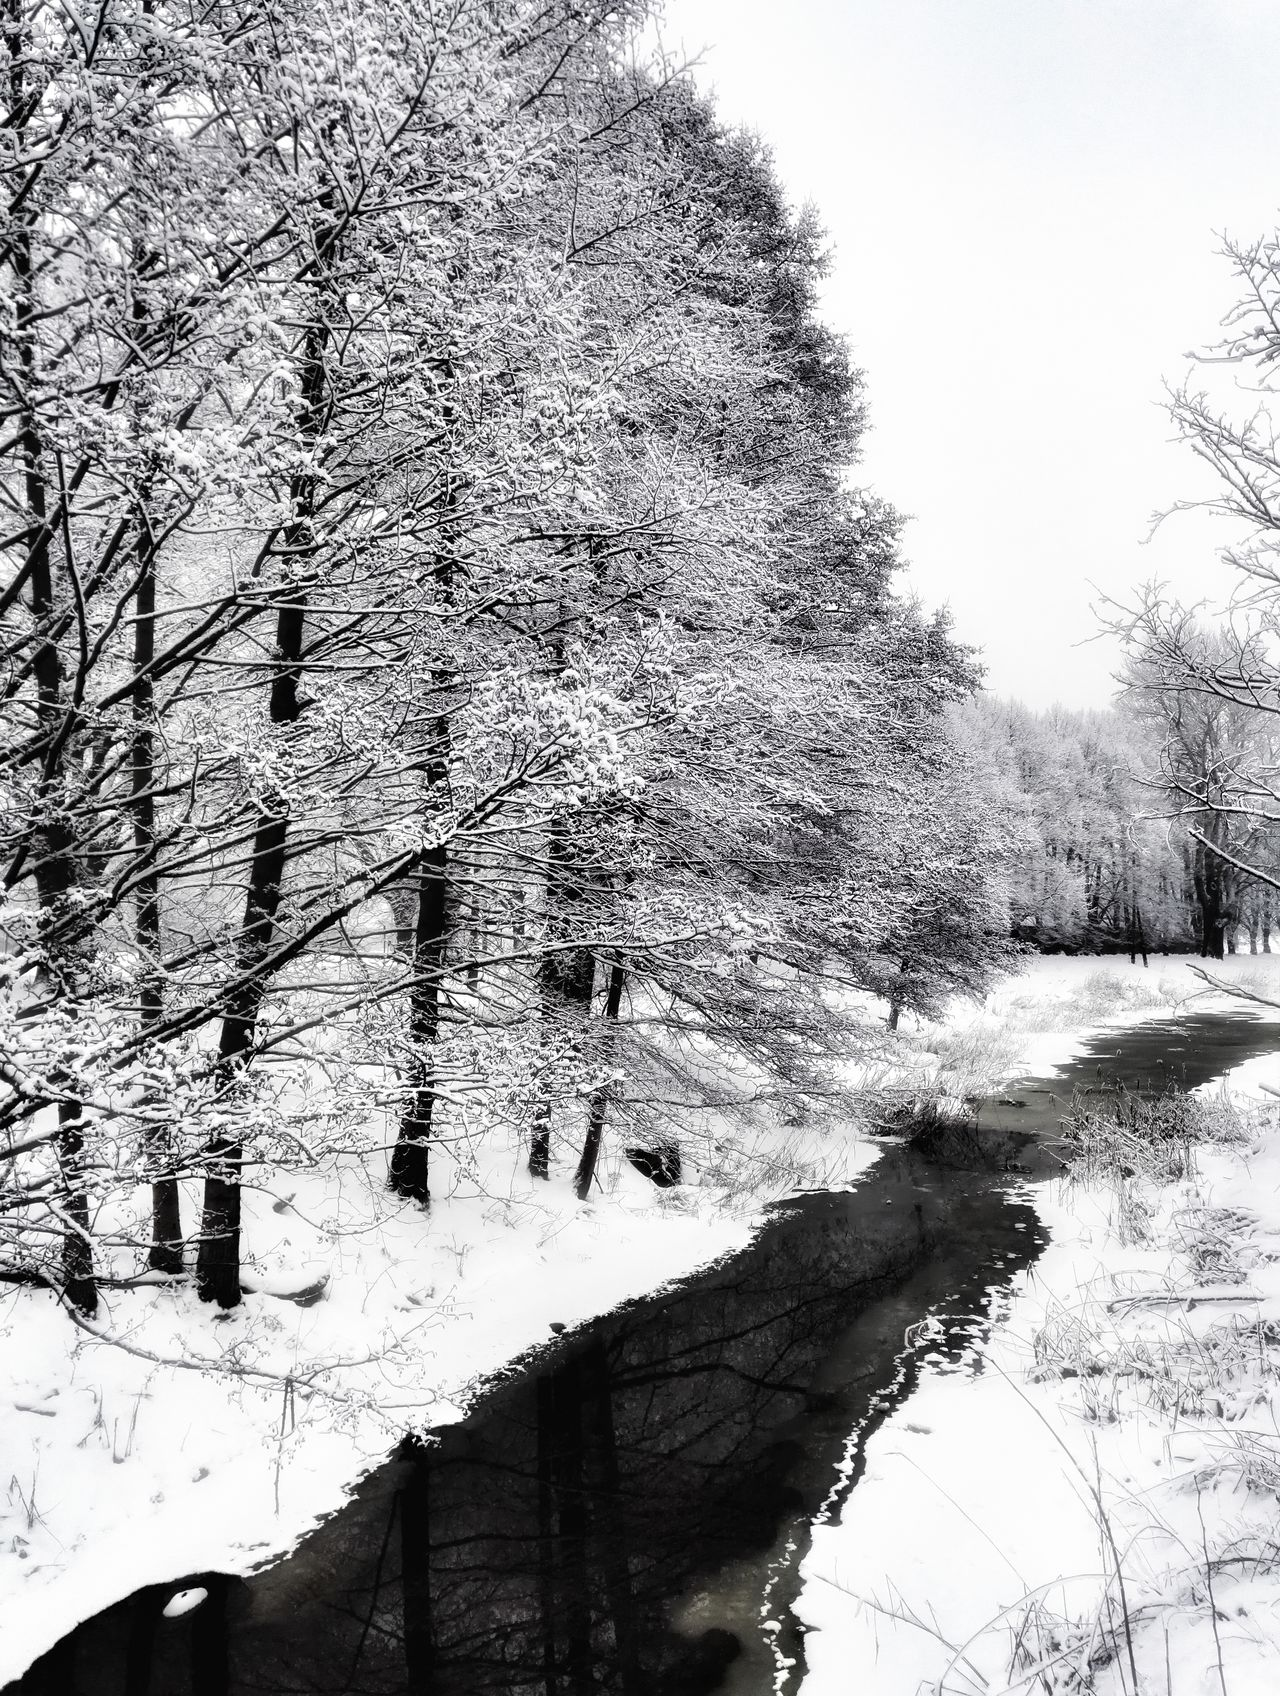 Tree City Weather Hello World Snow Enjoying Life Black And White Winter Tranquility Cold Temperature Day Cityscape Water Nature Standing Water Water_collection